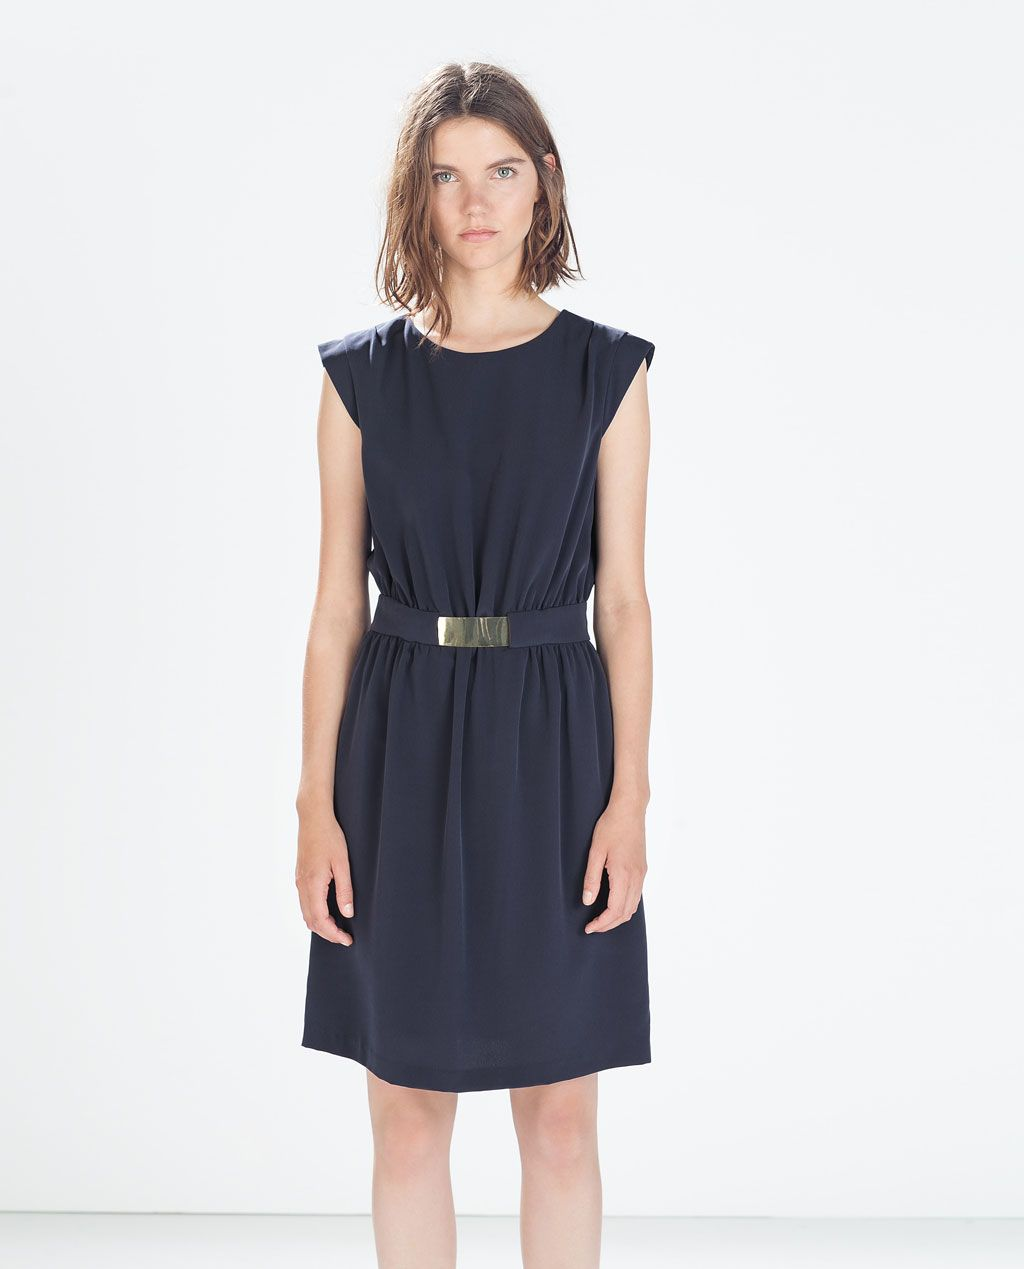 Zara woman flowy dress with buckled belt desiderata